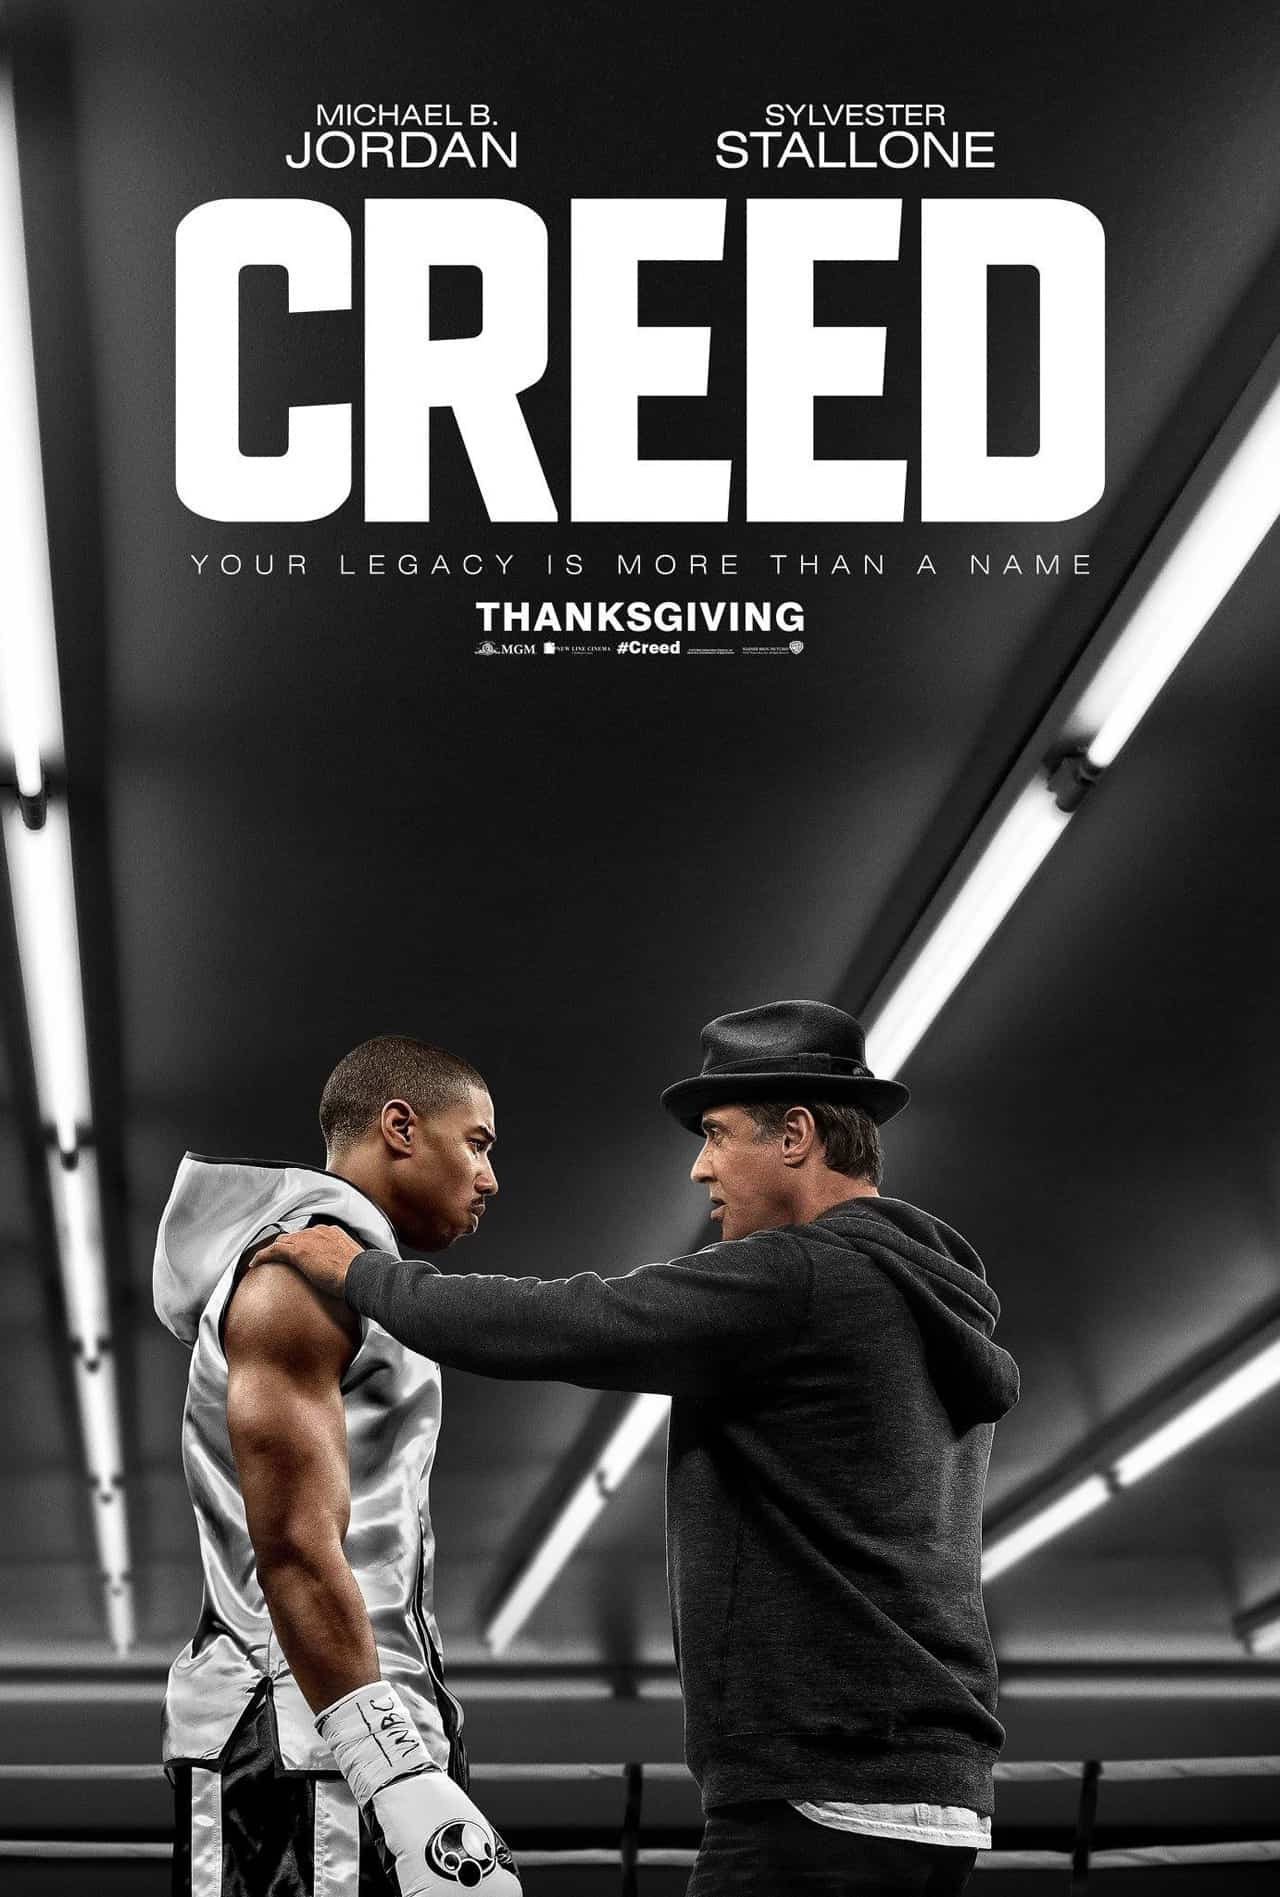 Creed Quotes | Creed Movie Quotes And Review The New Rocky Movie